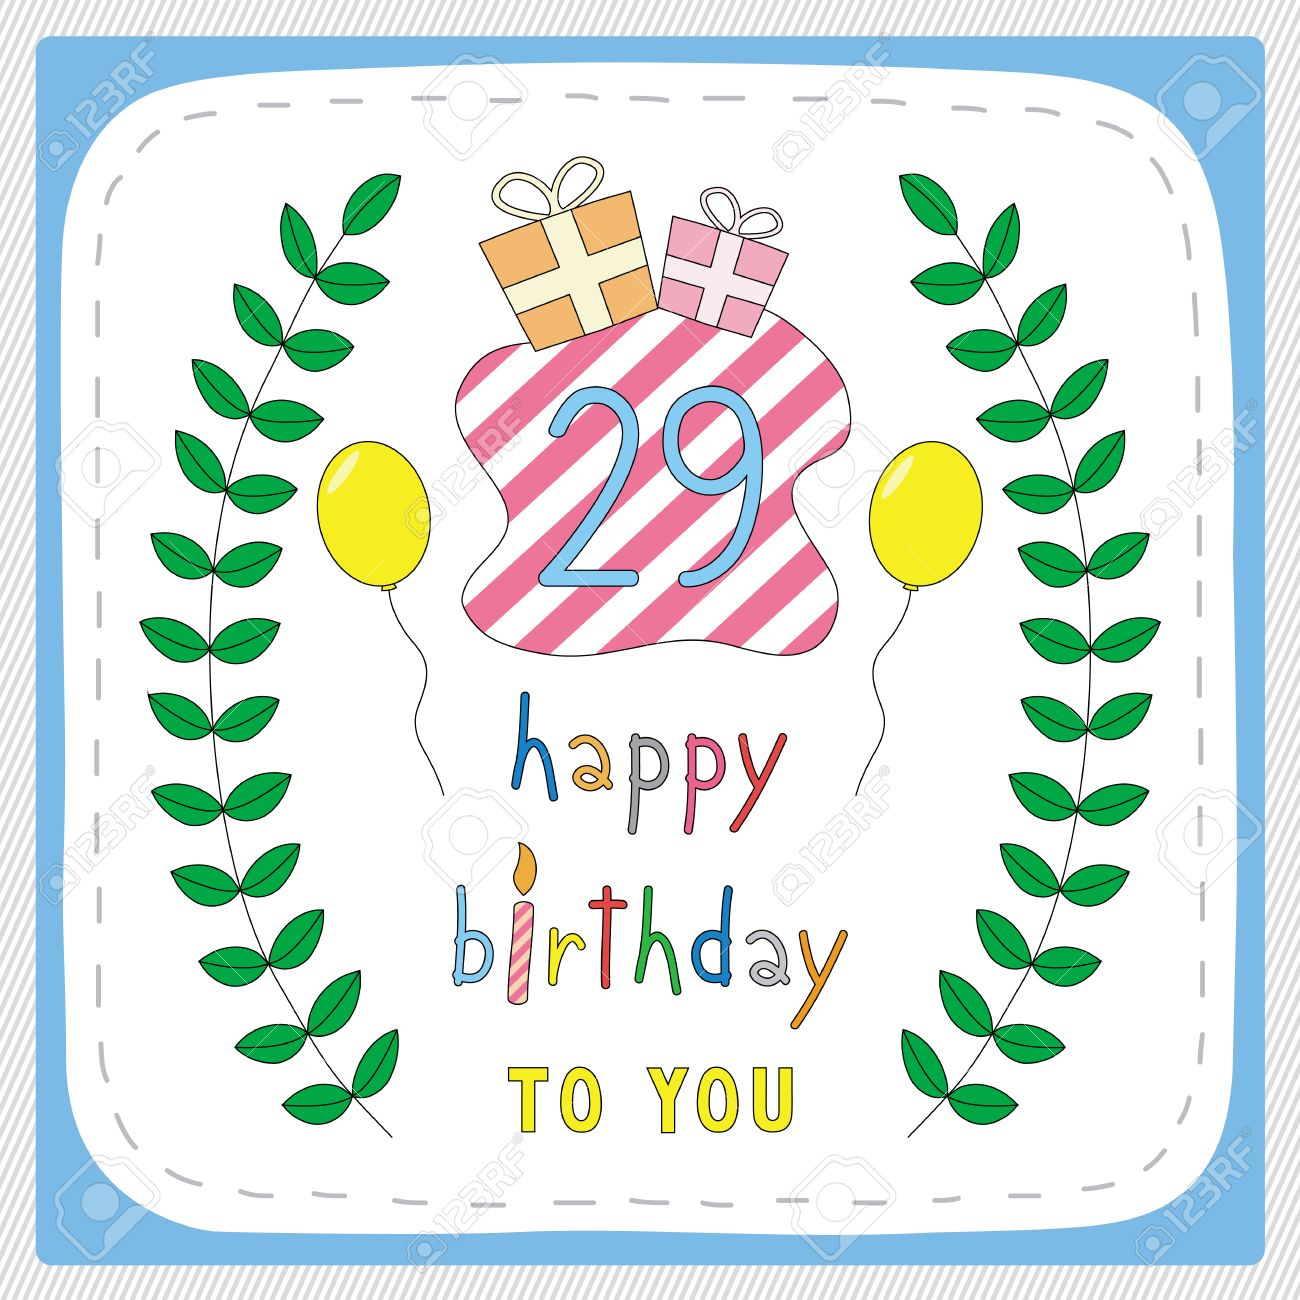 Happy birthday card with 29th birthday and for 29 years happy birthday card with 29th birthday and for 29 years anniversary celebration stock vector bookmarktalkfo Images